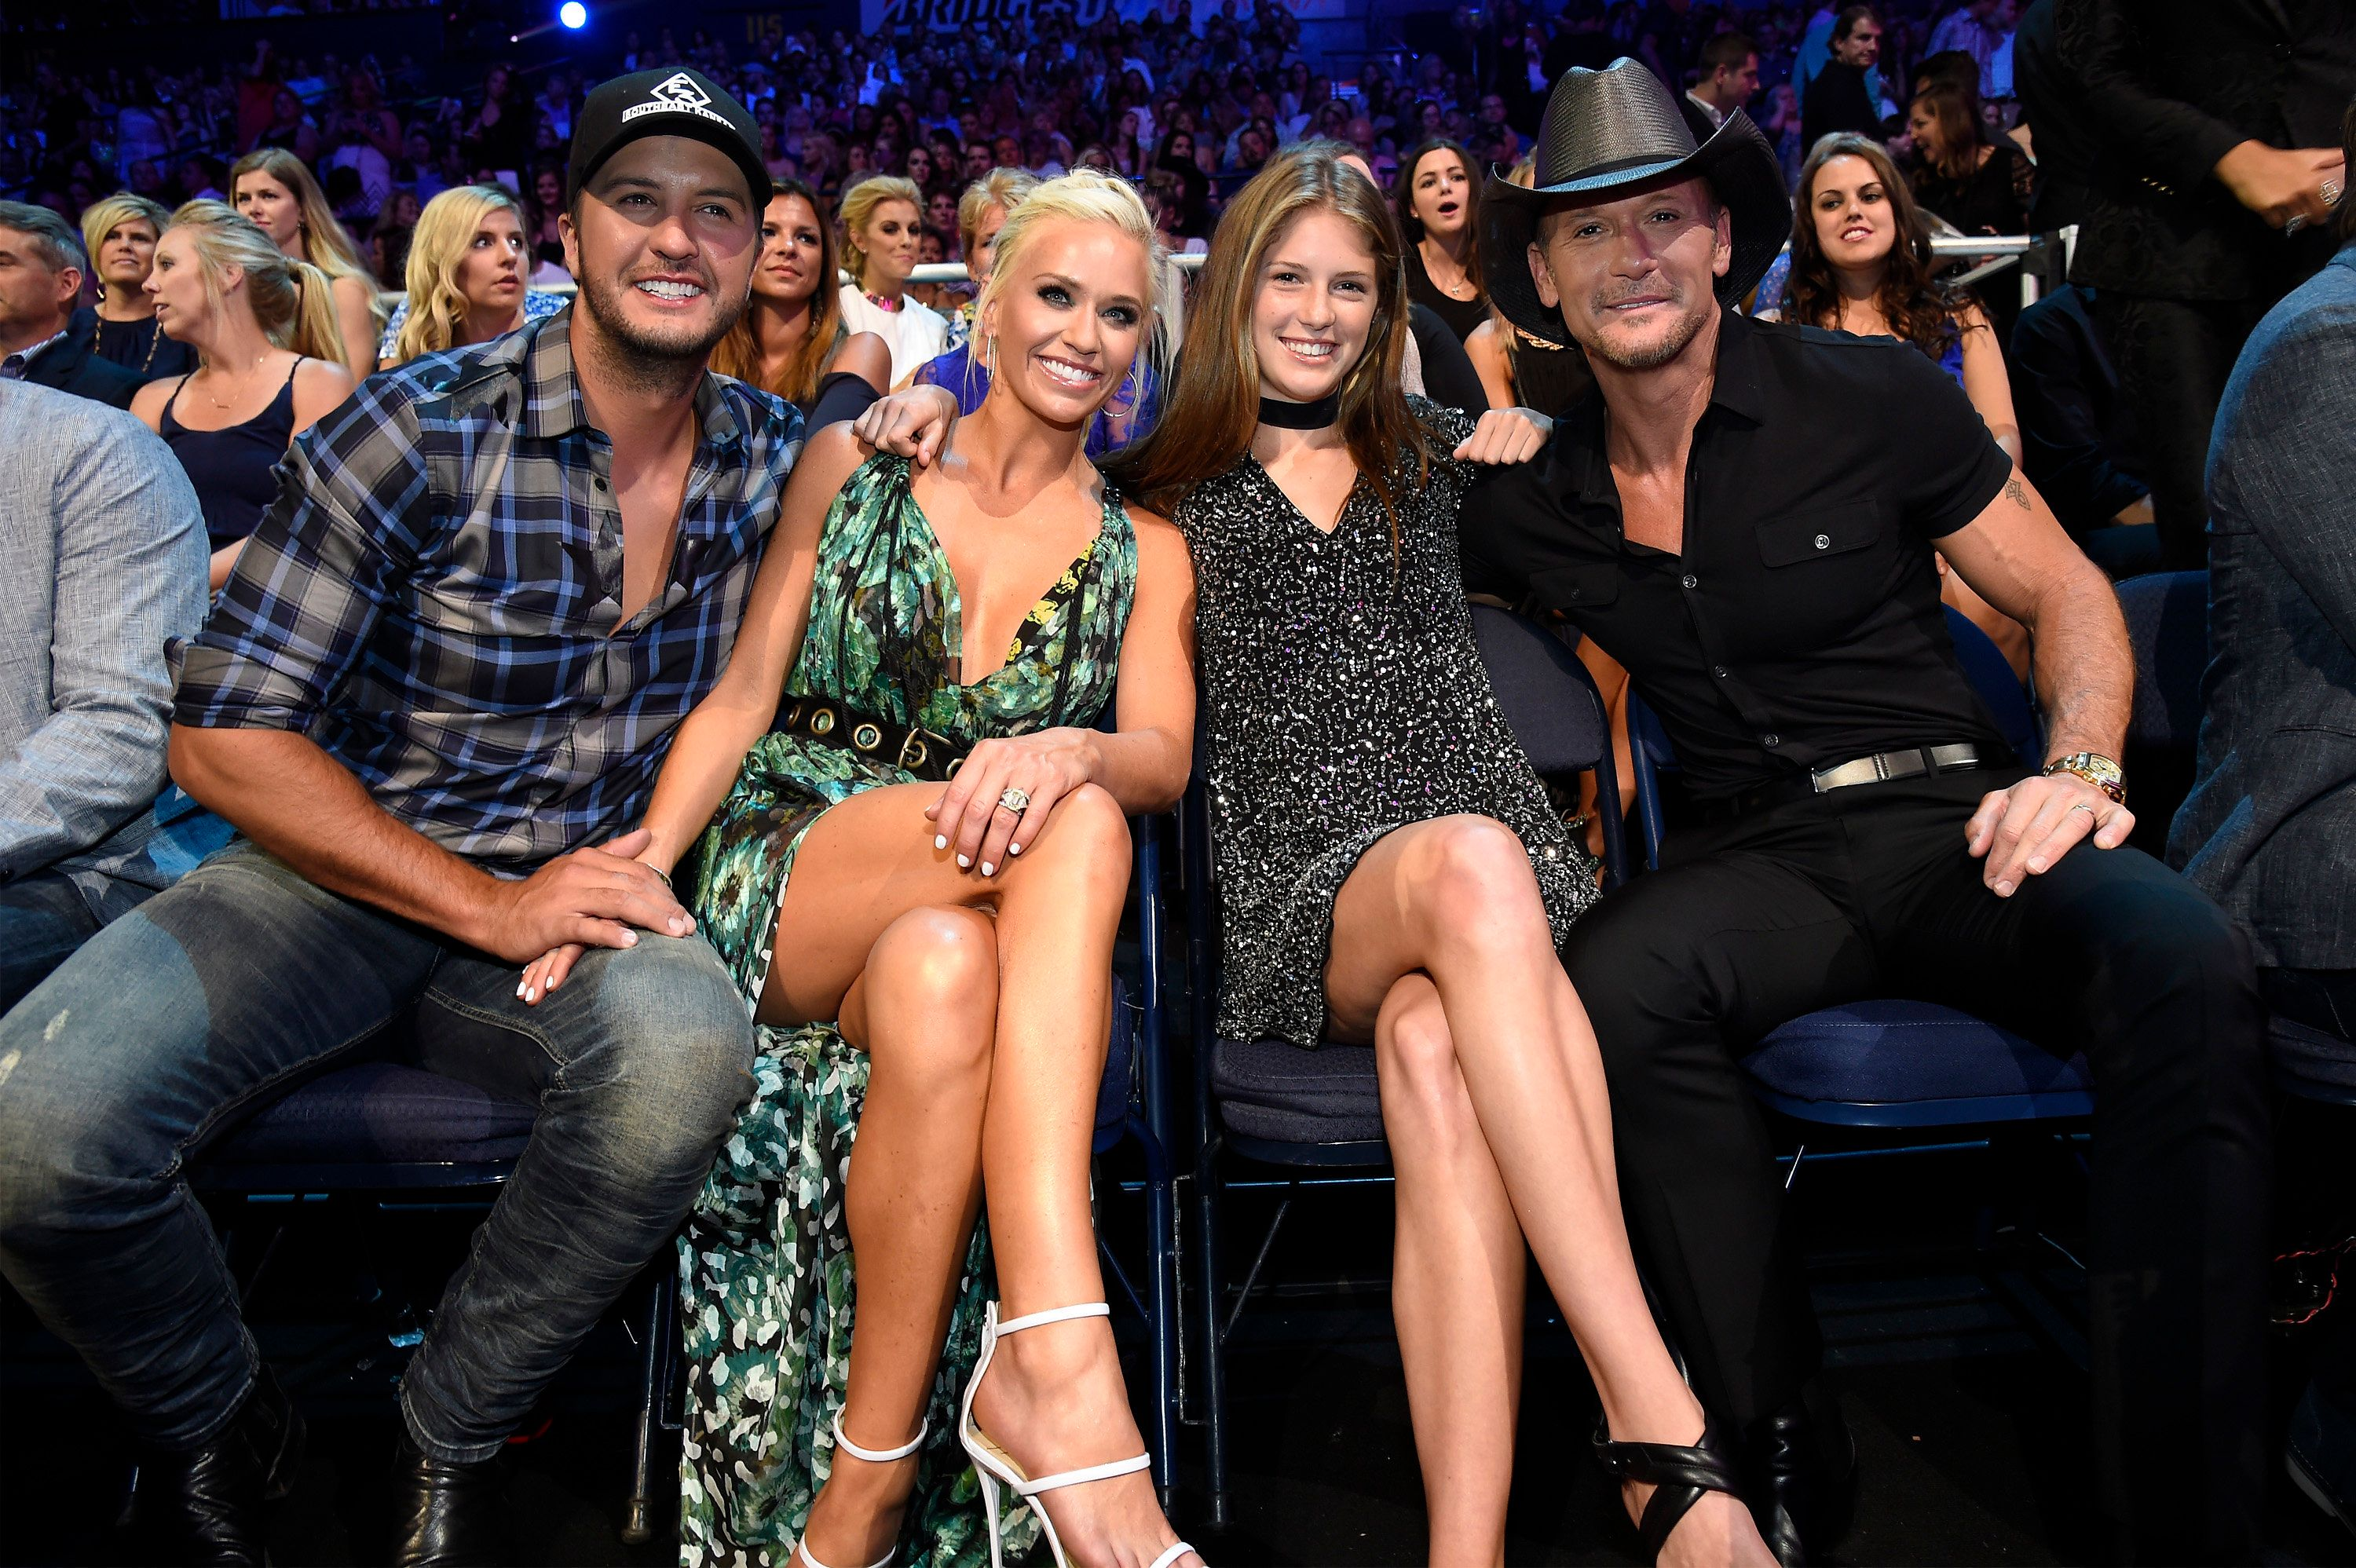 NASHVILLE, TN - JUNE 08: Singer-songwriter Luke Bryan, Caroline Boyer and singer-songwriter Tim McGraw attends the 2016 CMT Music awards at the Bridgestone Arena on June 8, 2016 in Nashville, Tennessee.  (Photo by Kevin Mazur/WireImage)